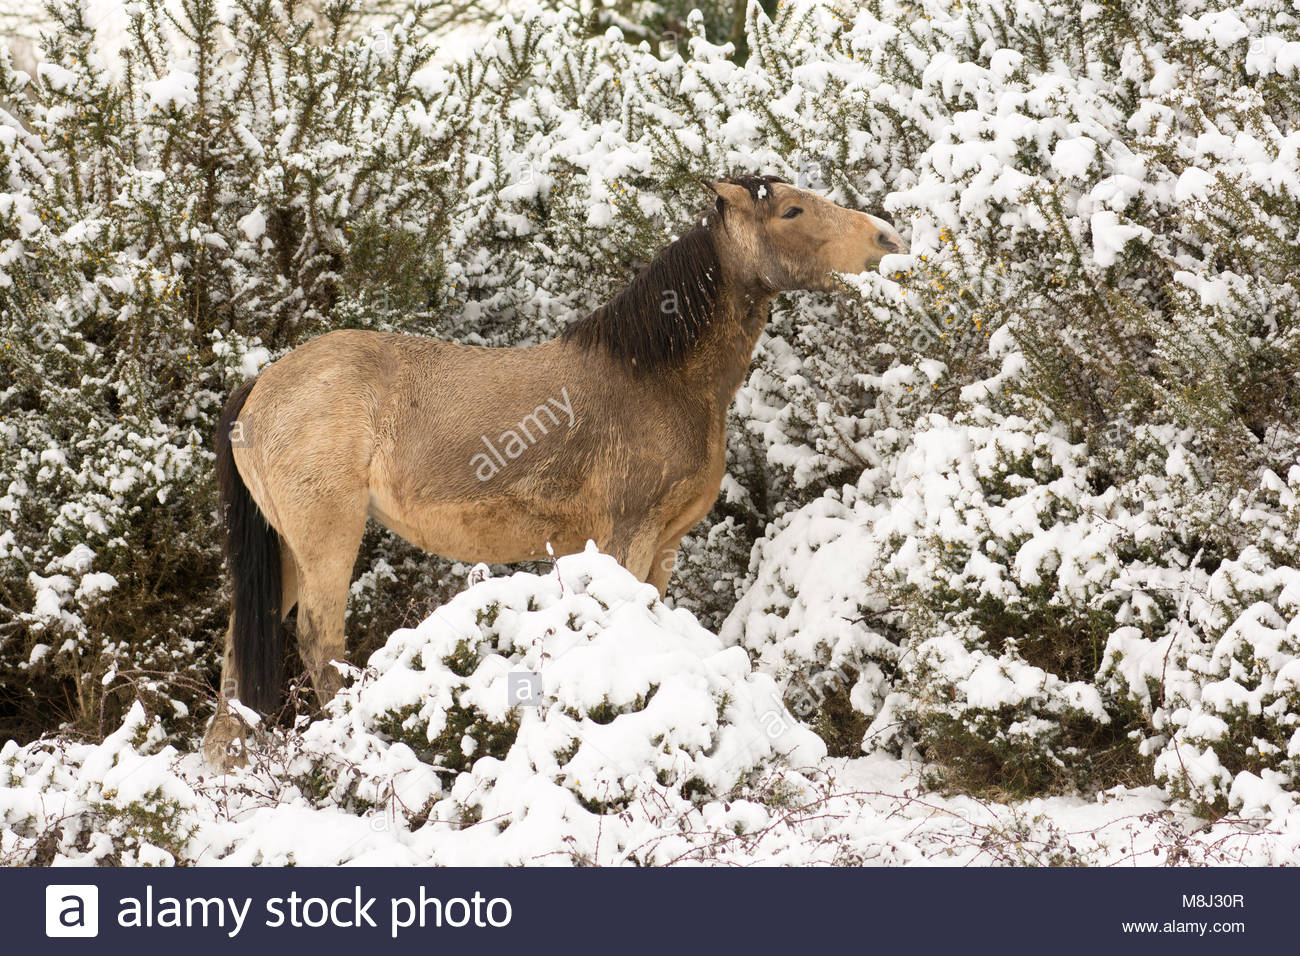 Godshill, Fordingbridge, Hampshire, England, UK, 18th March 2018: New Forest ponies forage on gorse bushes topped - Stock Image